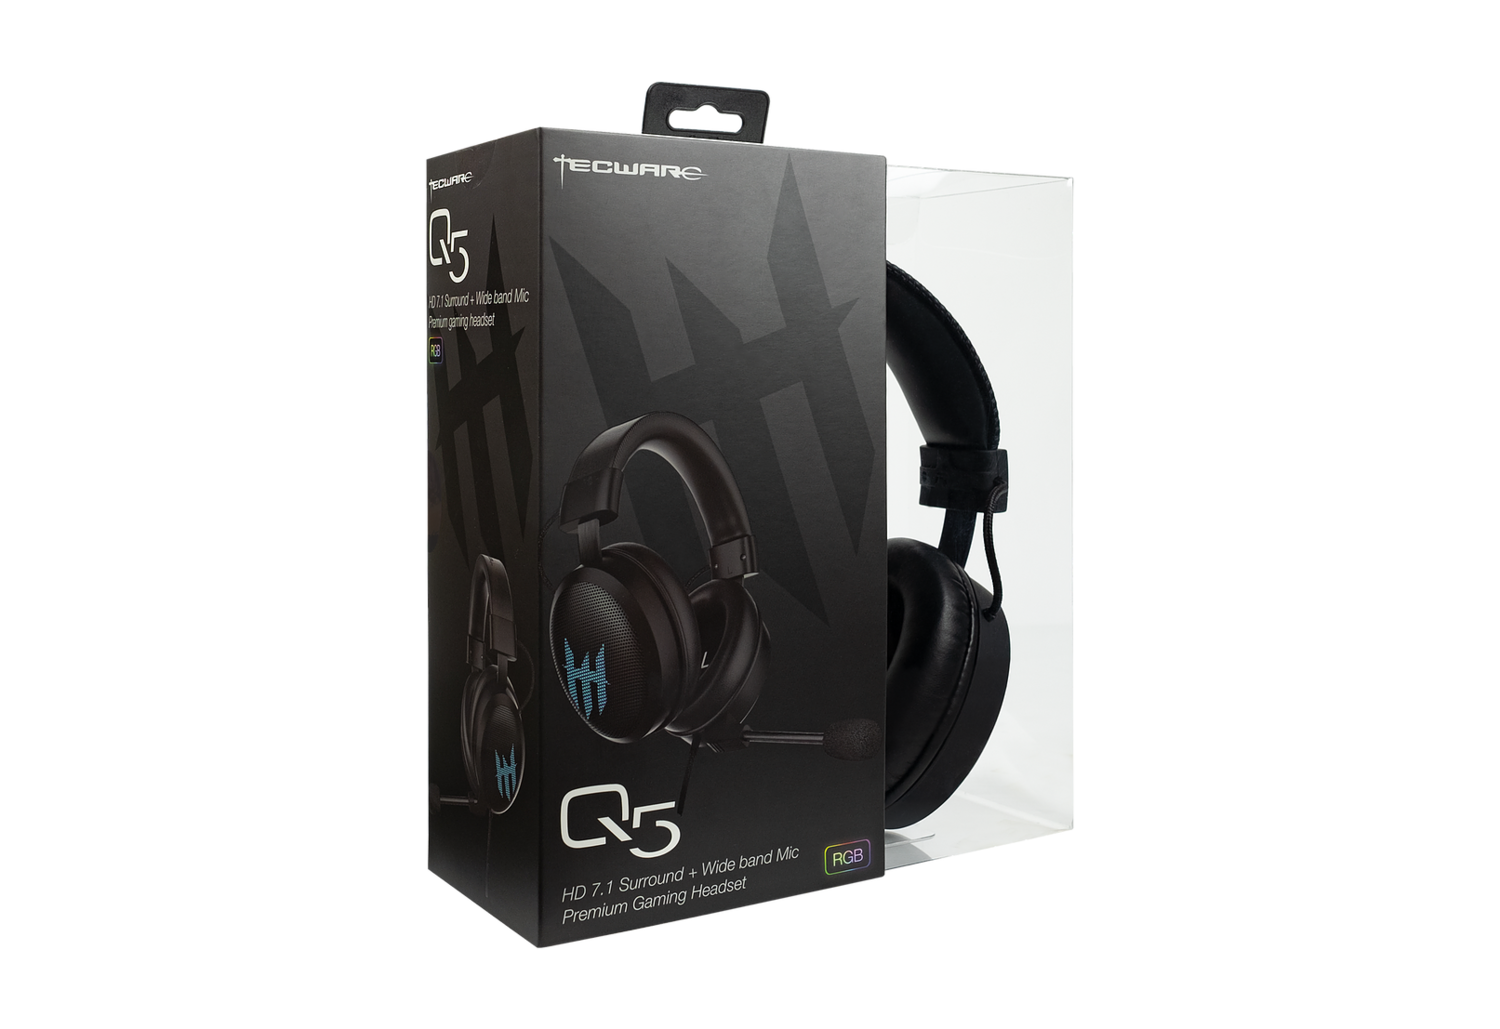 TECWARE Q5 7.1 SURROUND PREMIUM GAMING HEADSET | 7.1 SURROUND ENHANCEMENT | 5-BAND CUSTOM EQUALIZER SETTINGS | WIDEBAND MIC + GAIN CONTROL | RGB ILLUMNIATION